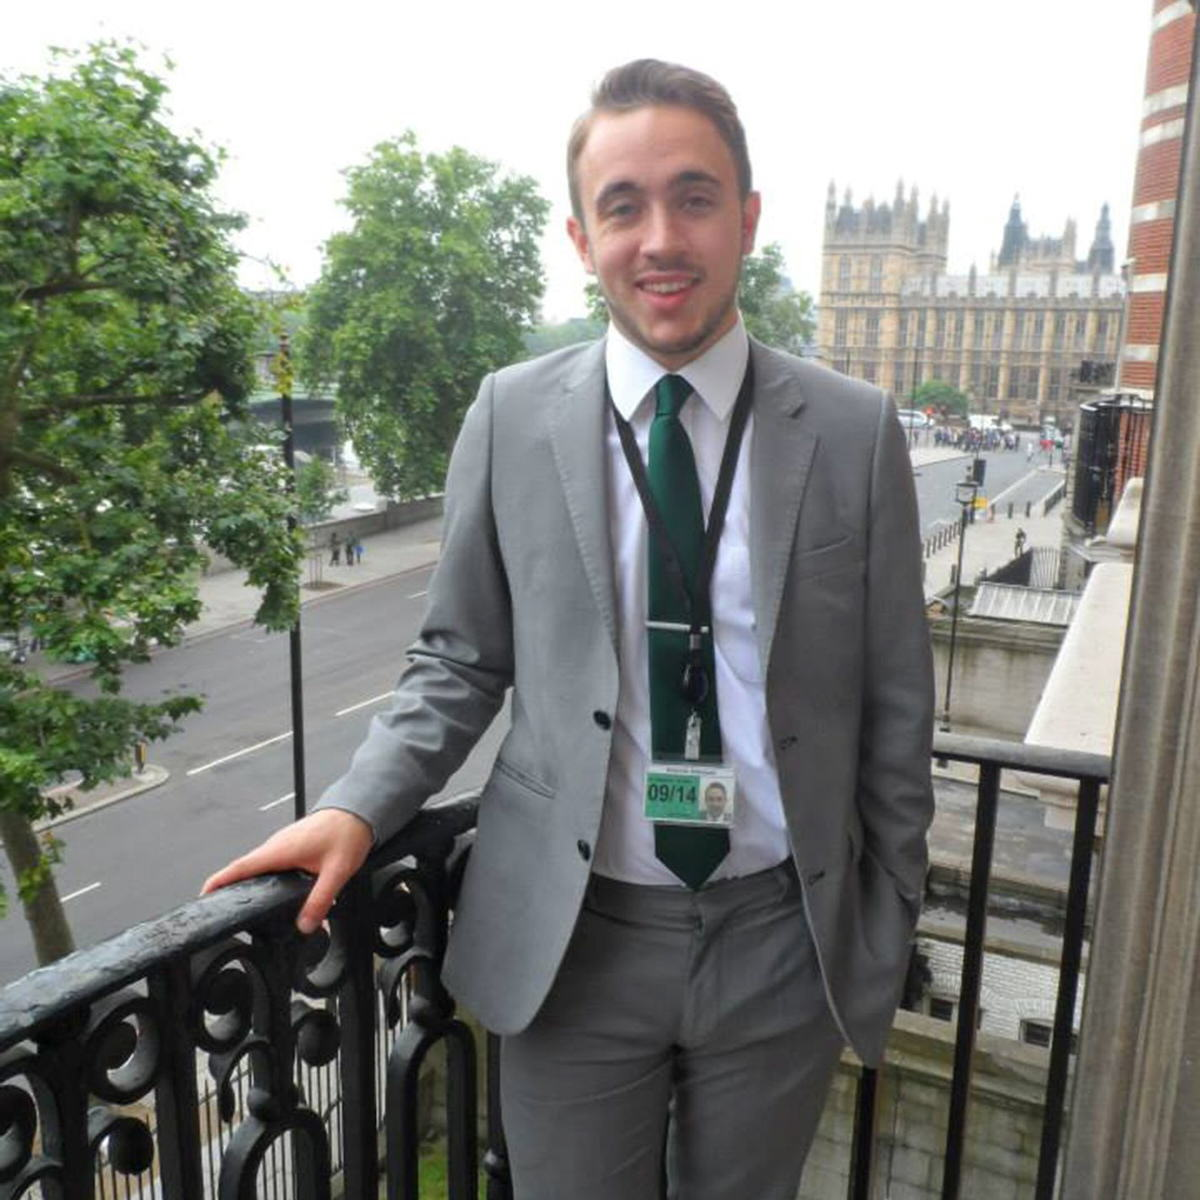 UNILAD SWNS TAB INTERN 0675705 Politics Intern Reveals Weird And Gross Stuff That Happens In Westminster